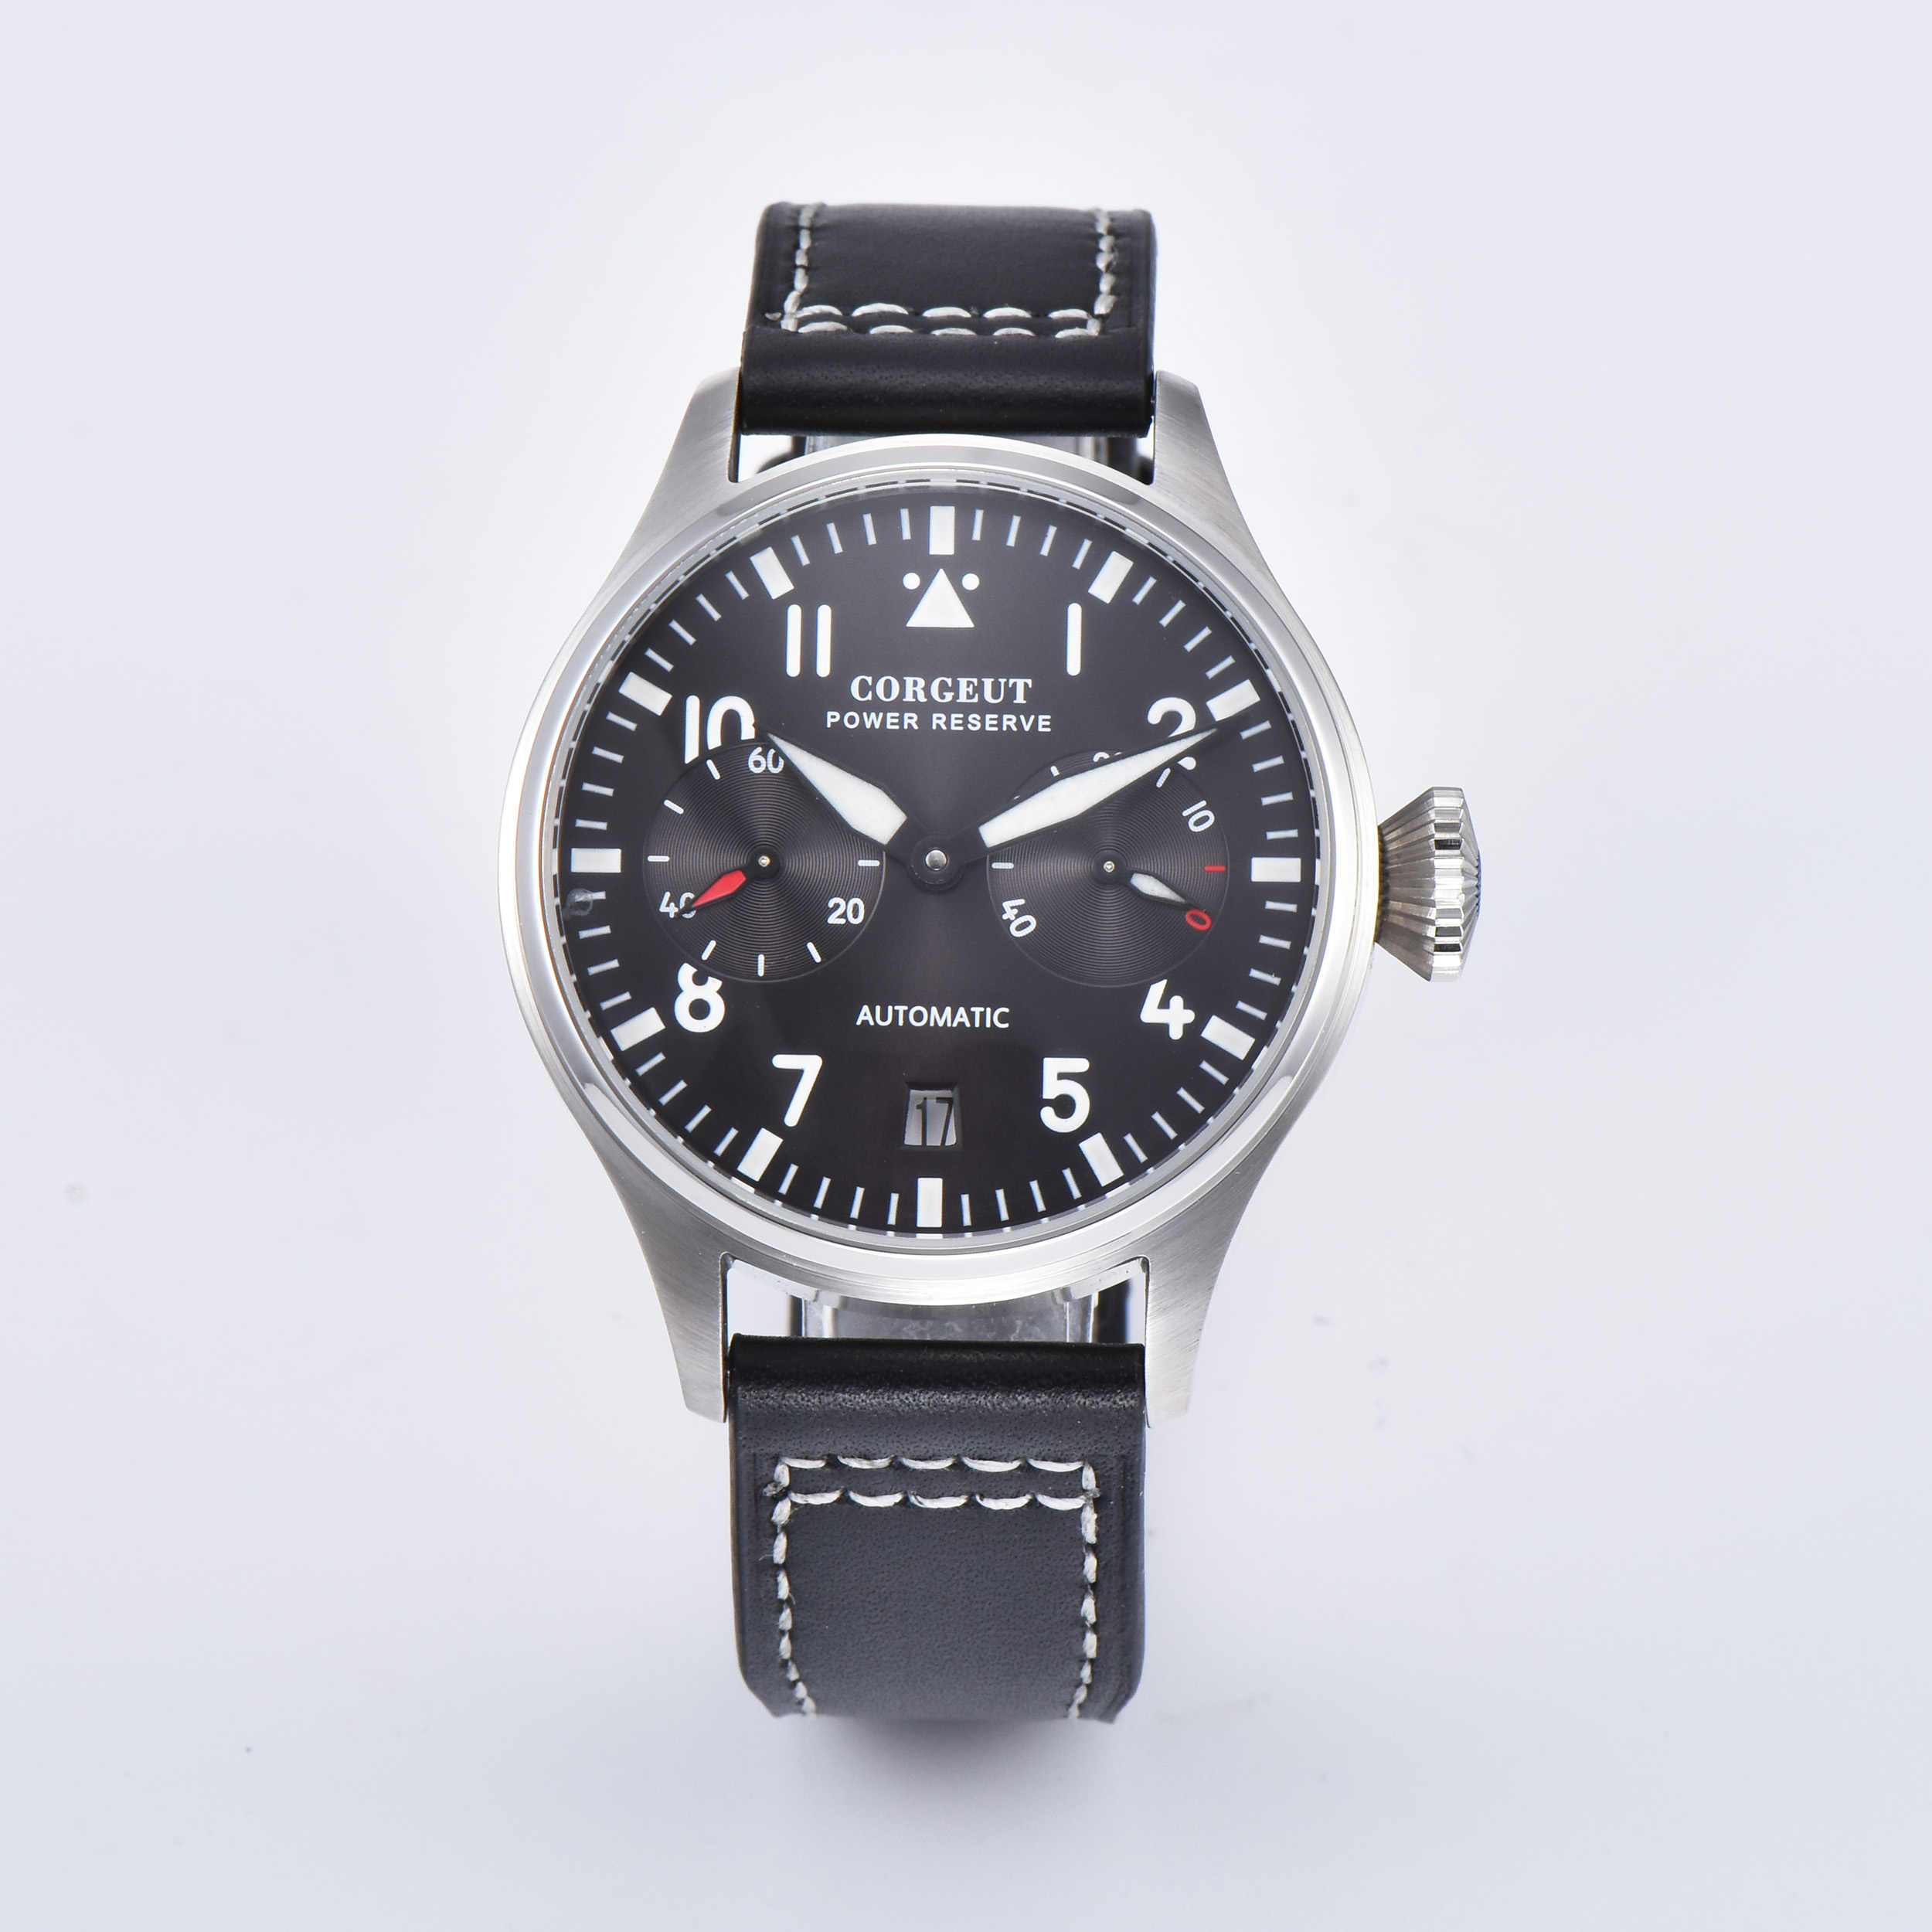 Corgeut 42mm Date black dial Power Reserve Window Leather Automaitc Men's Watch